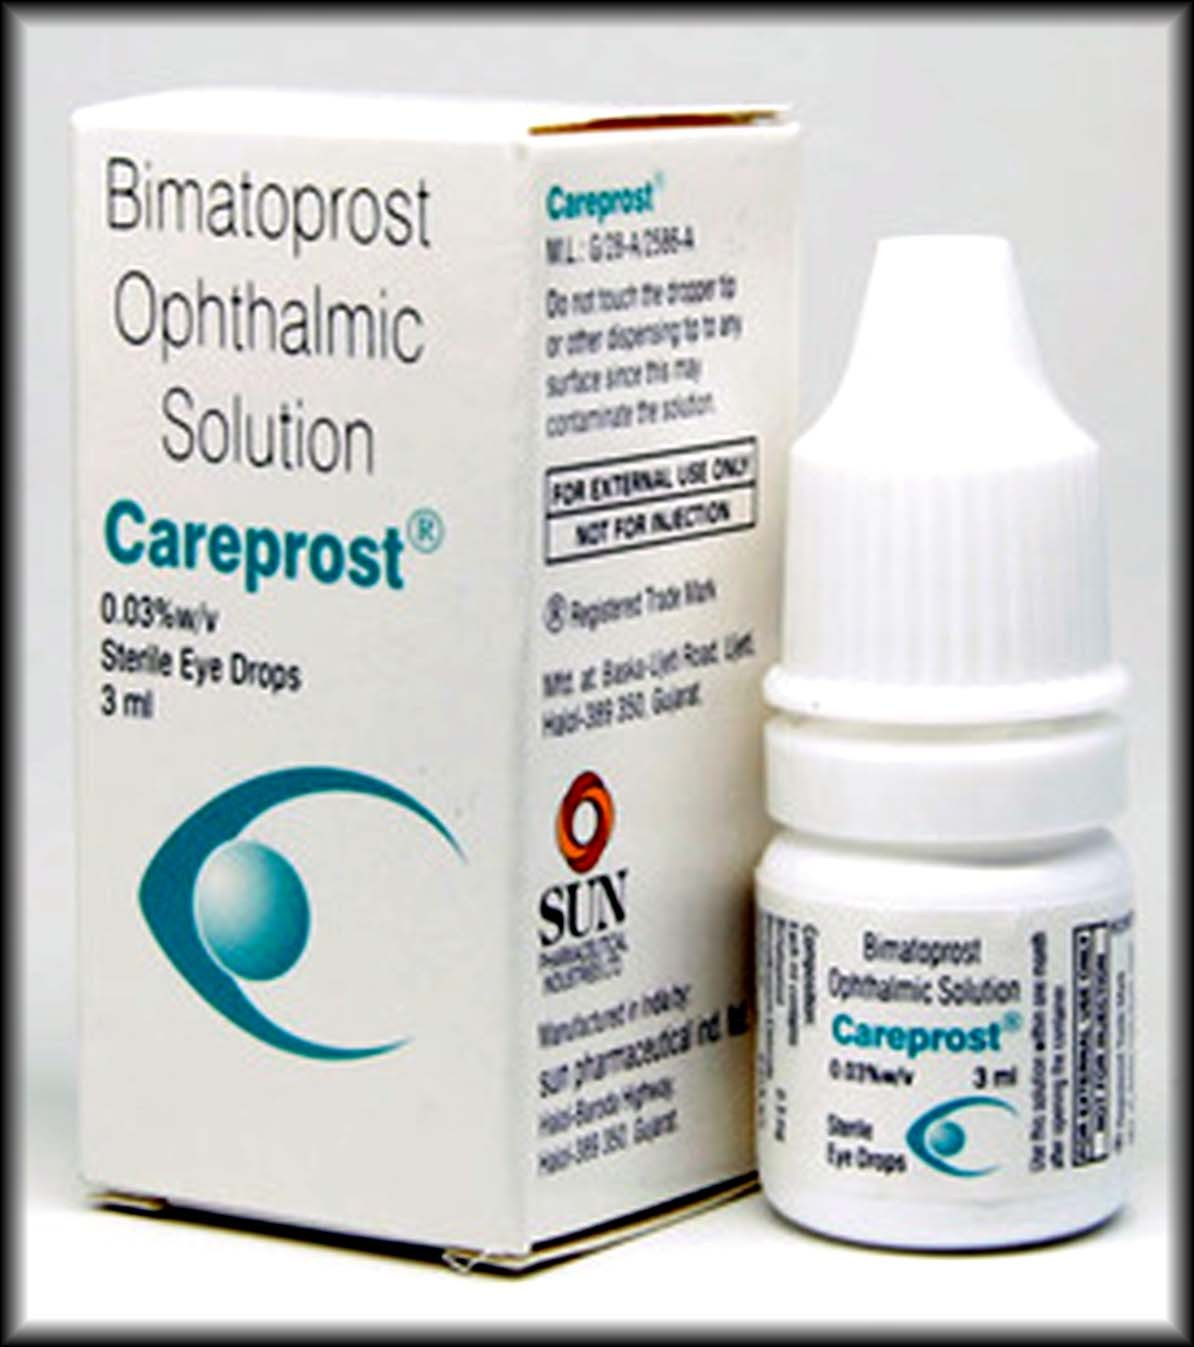 Careprost The Best Eyelash Enhancer Buy Careprost Online